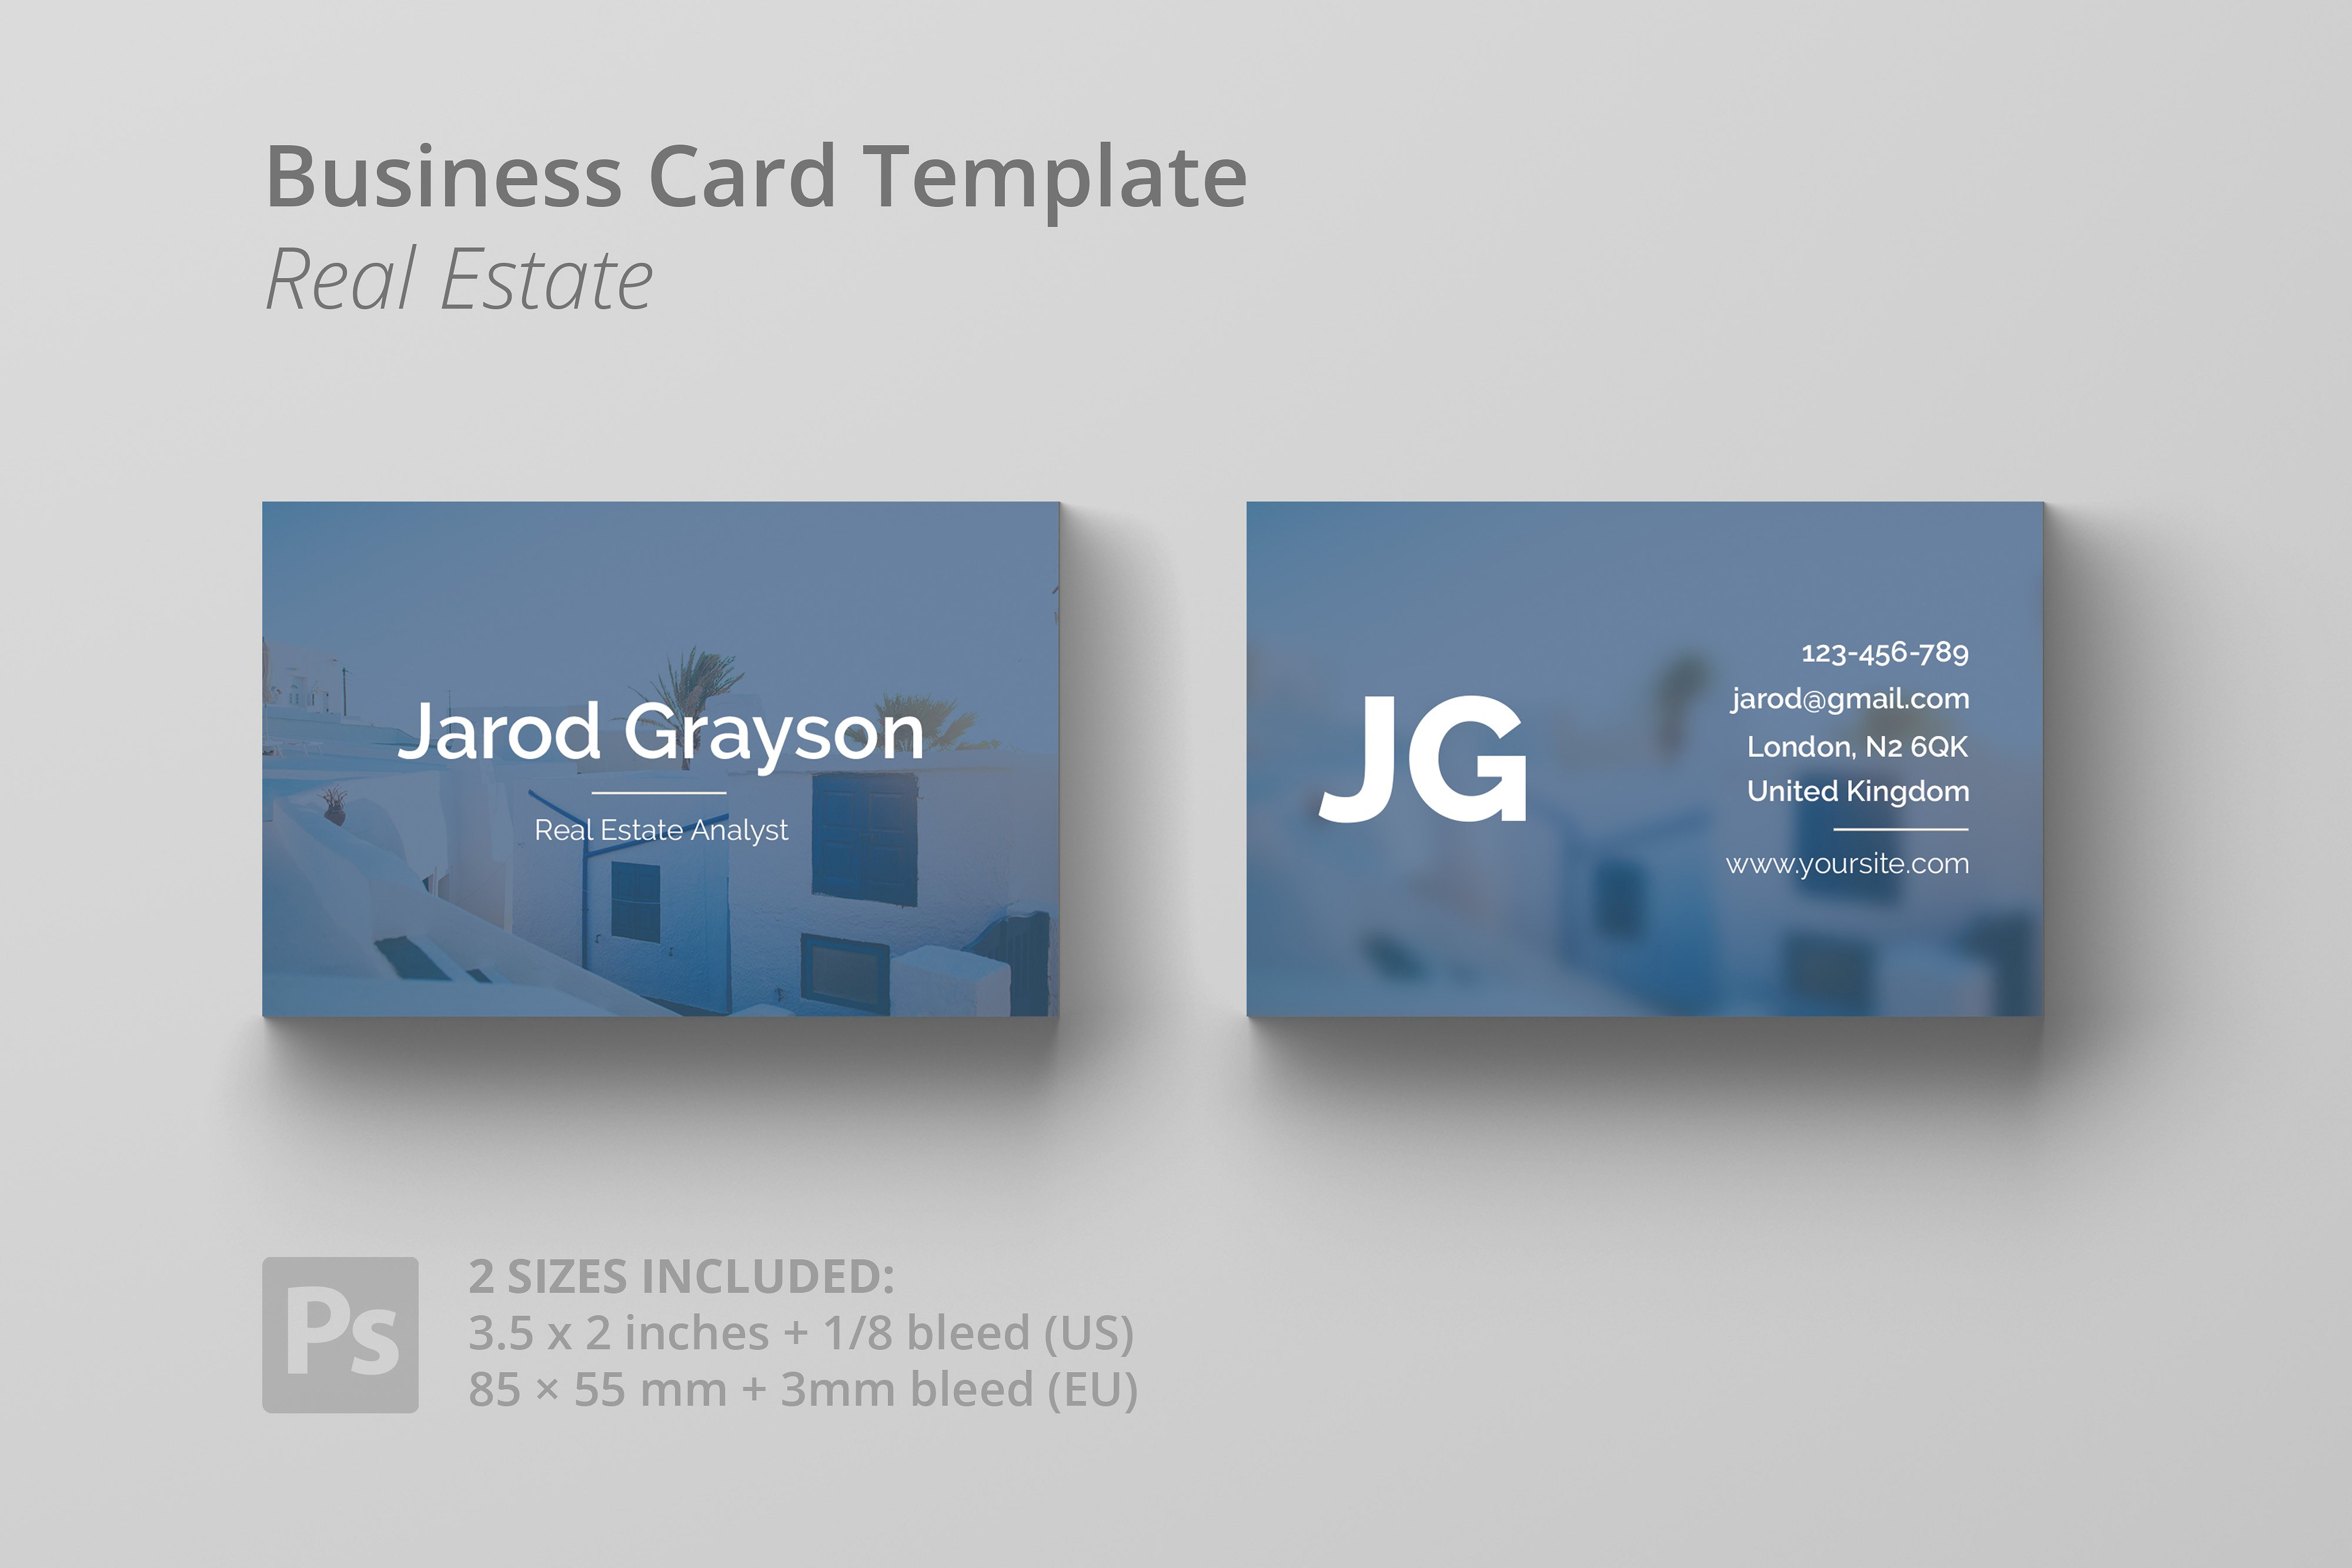 30 modern real estate business cards psd decolorenet for Real estate business cards templates free